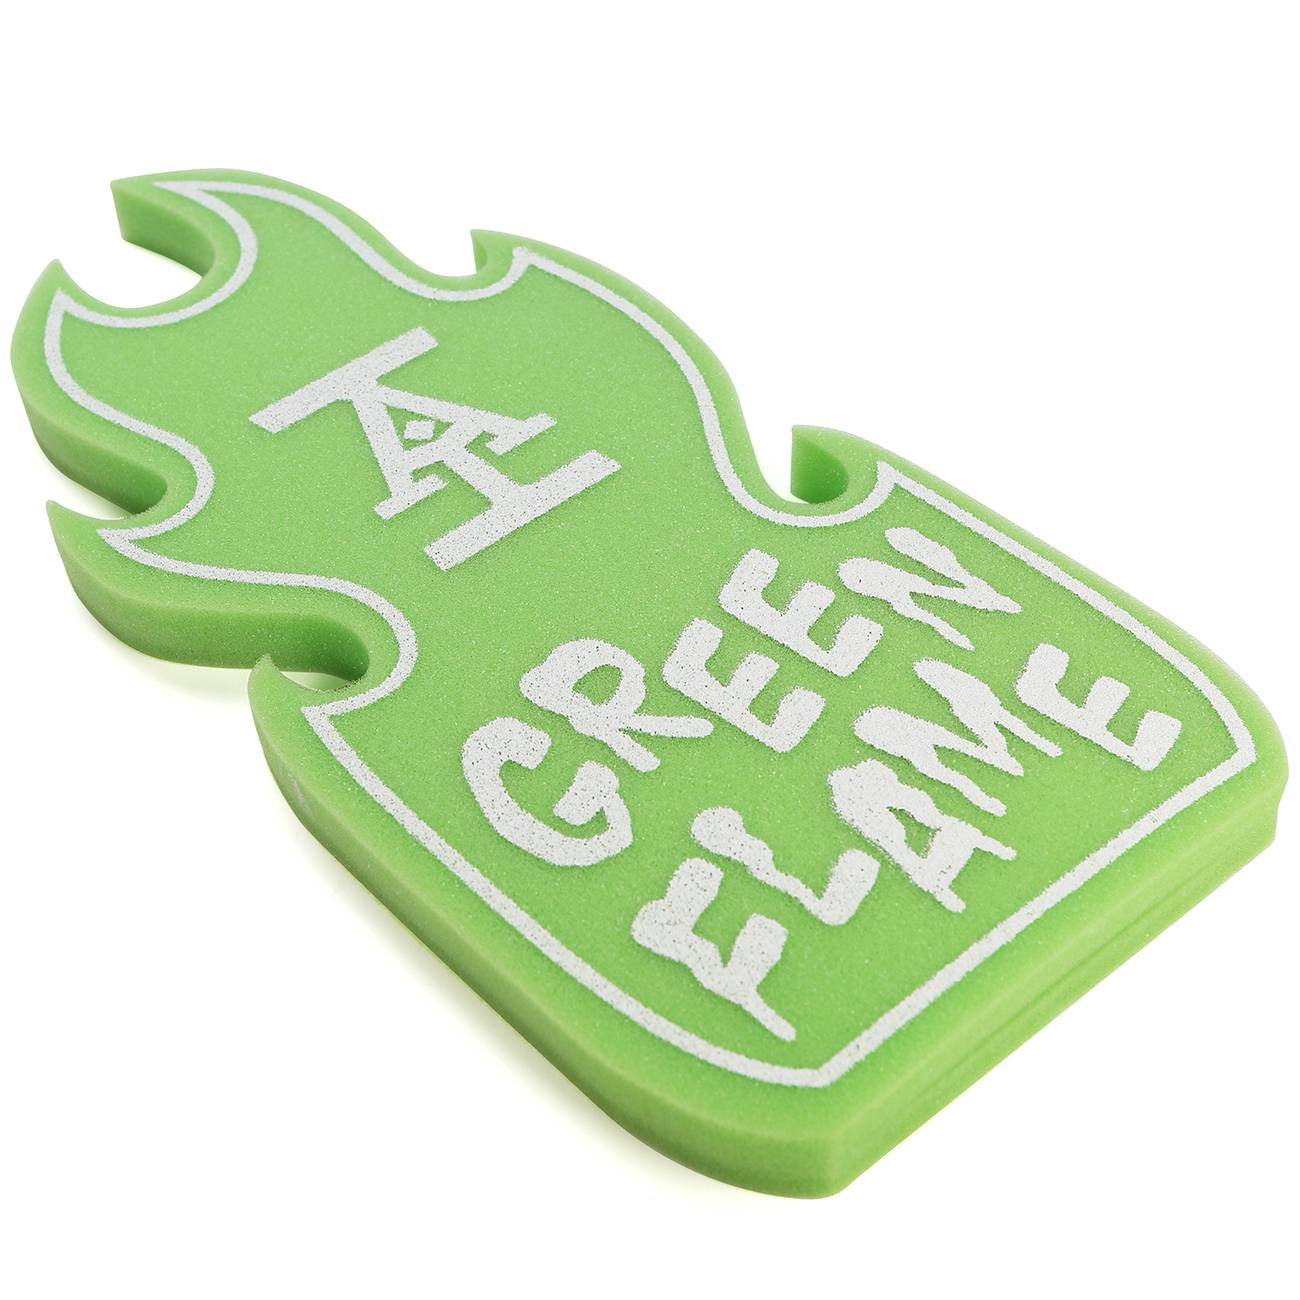 Acquisitions Incorporated Green Flame Foam Finger